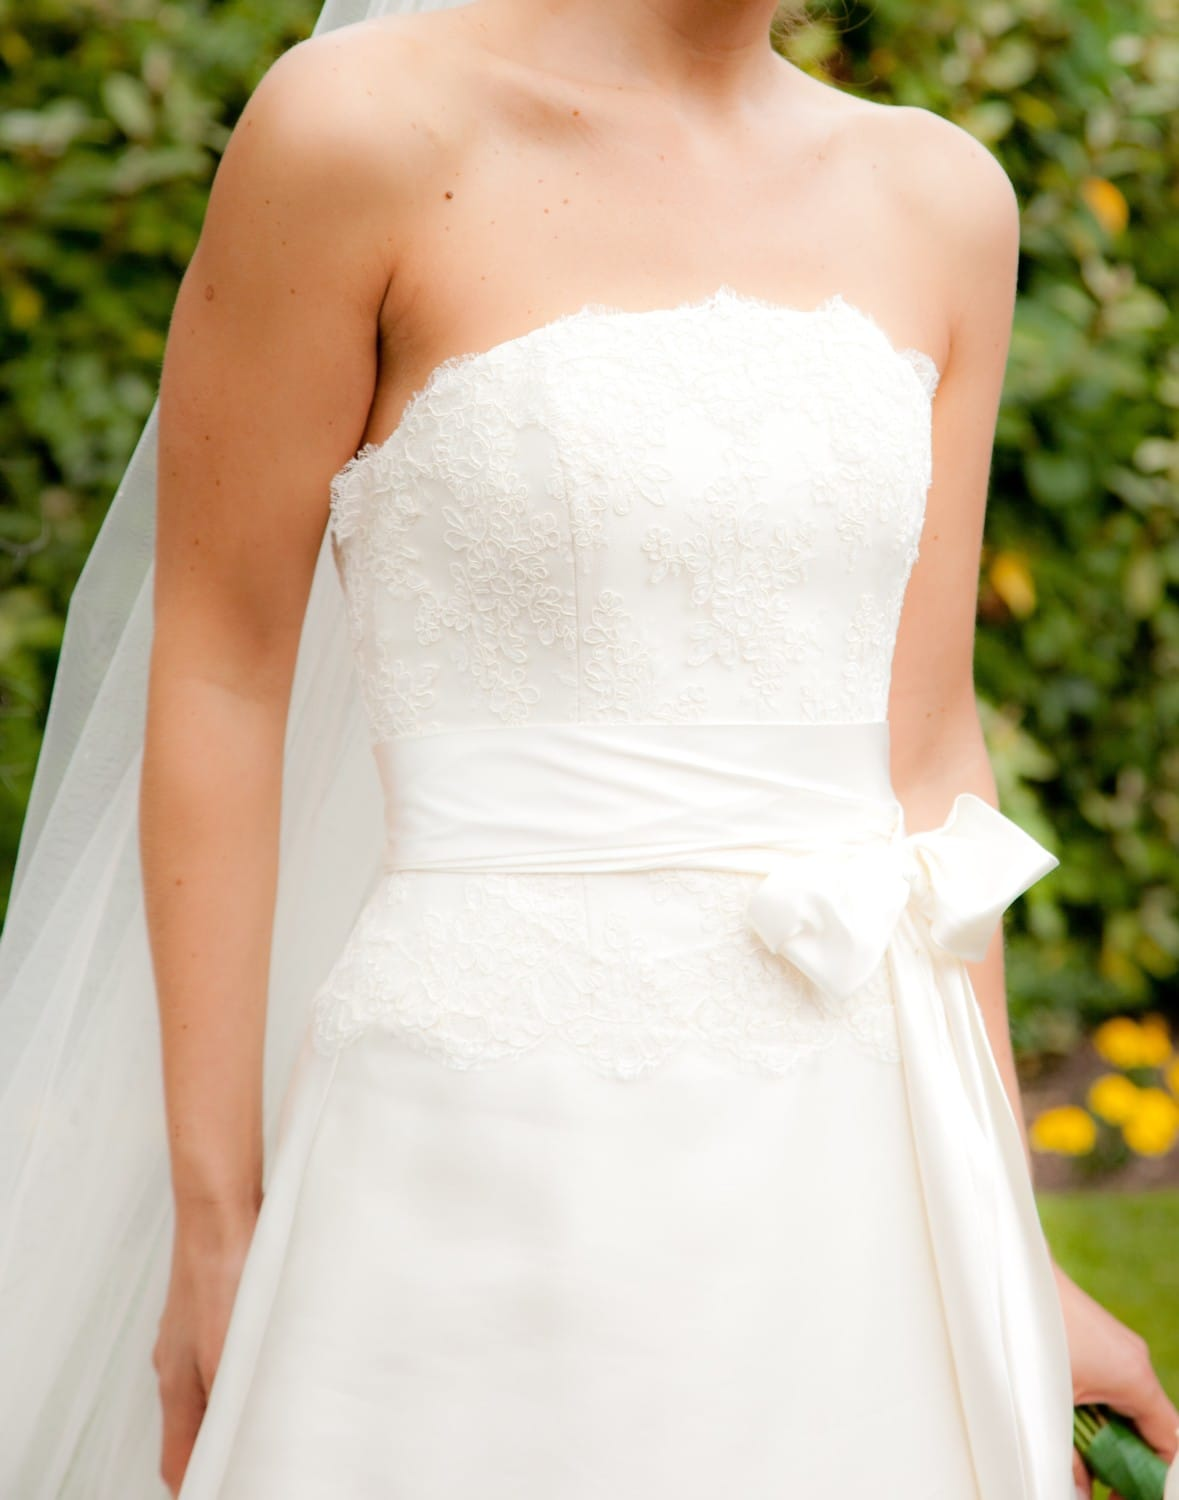 Dress cropped sell my wedding dress online sell my for Selling your wedding dress